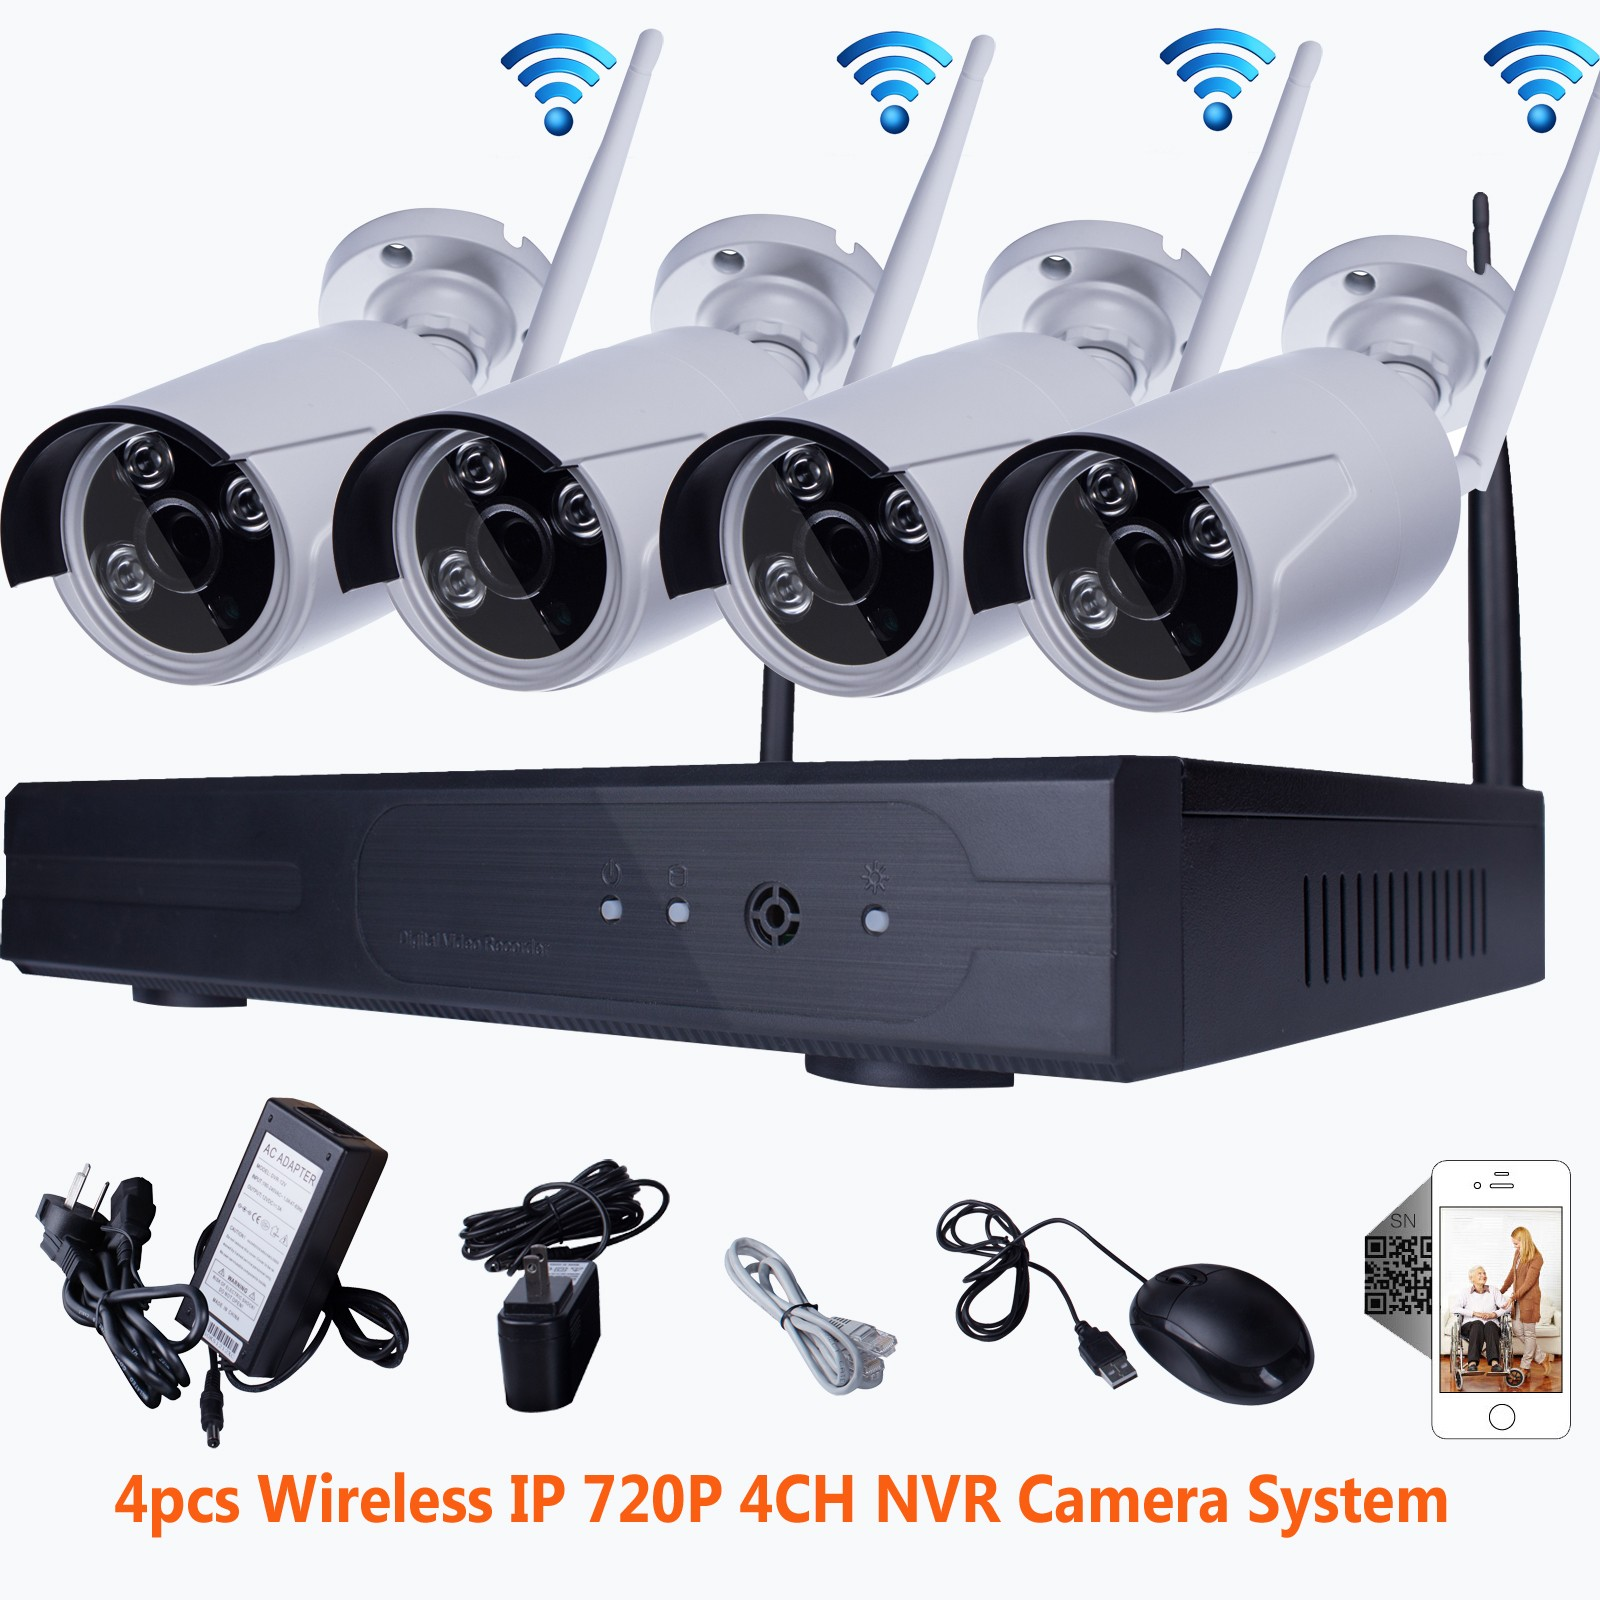 Wifi 4ch Nvr 720p Ip Wireless Cctv Surveillance Security System Outdoor Camera Ebay